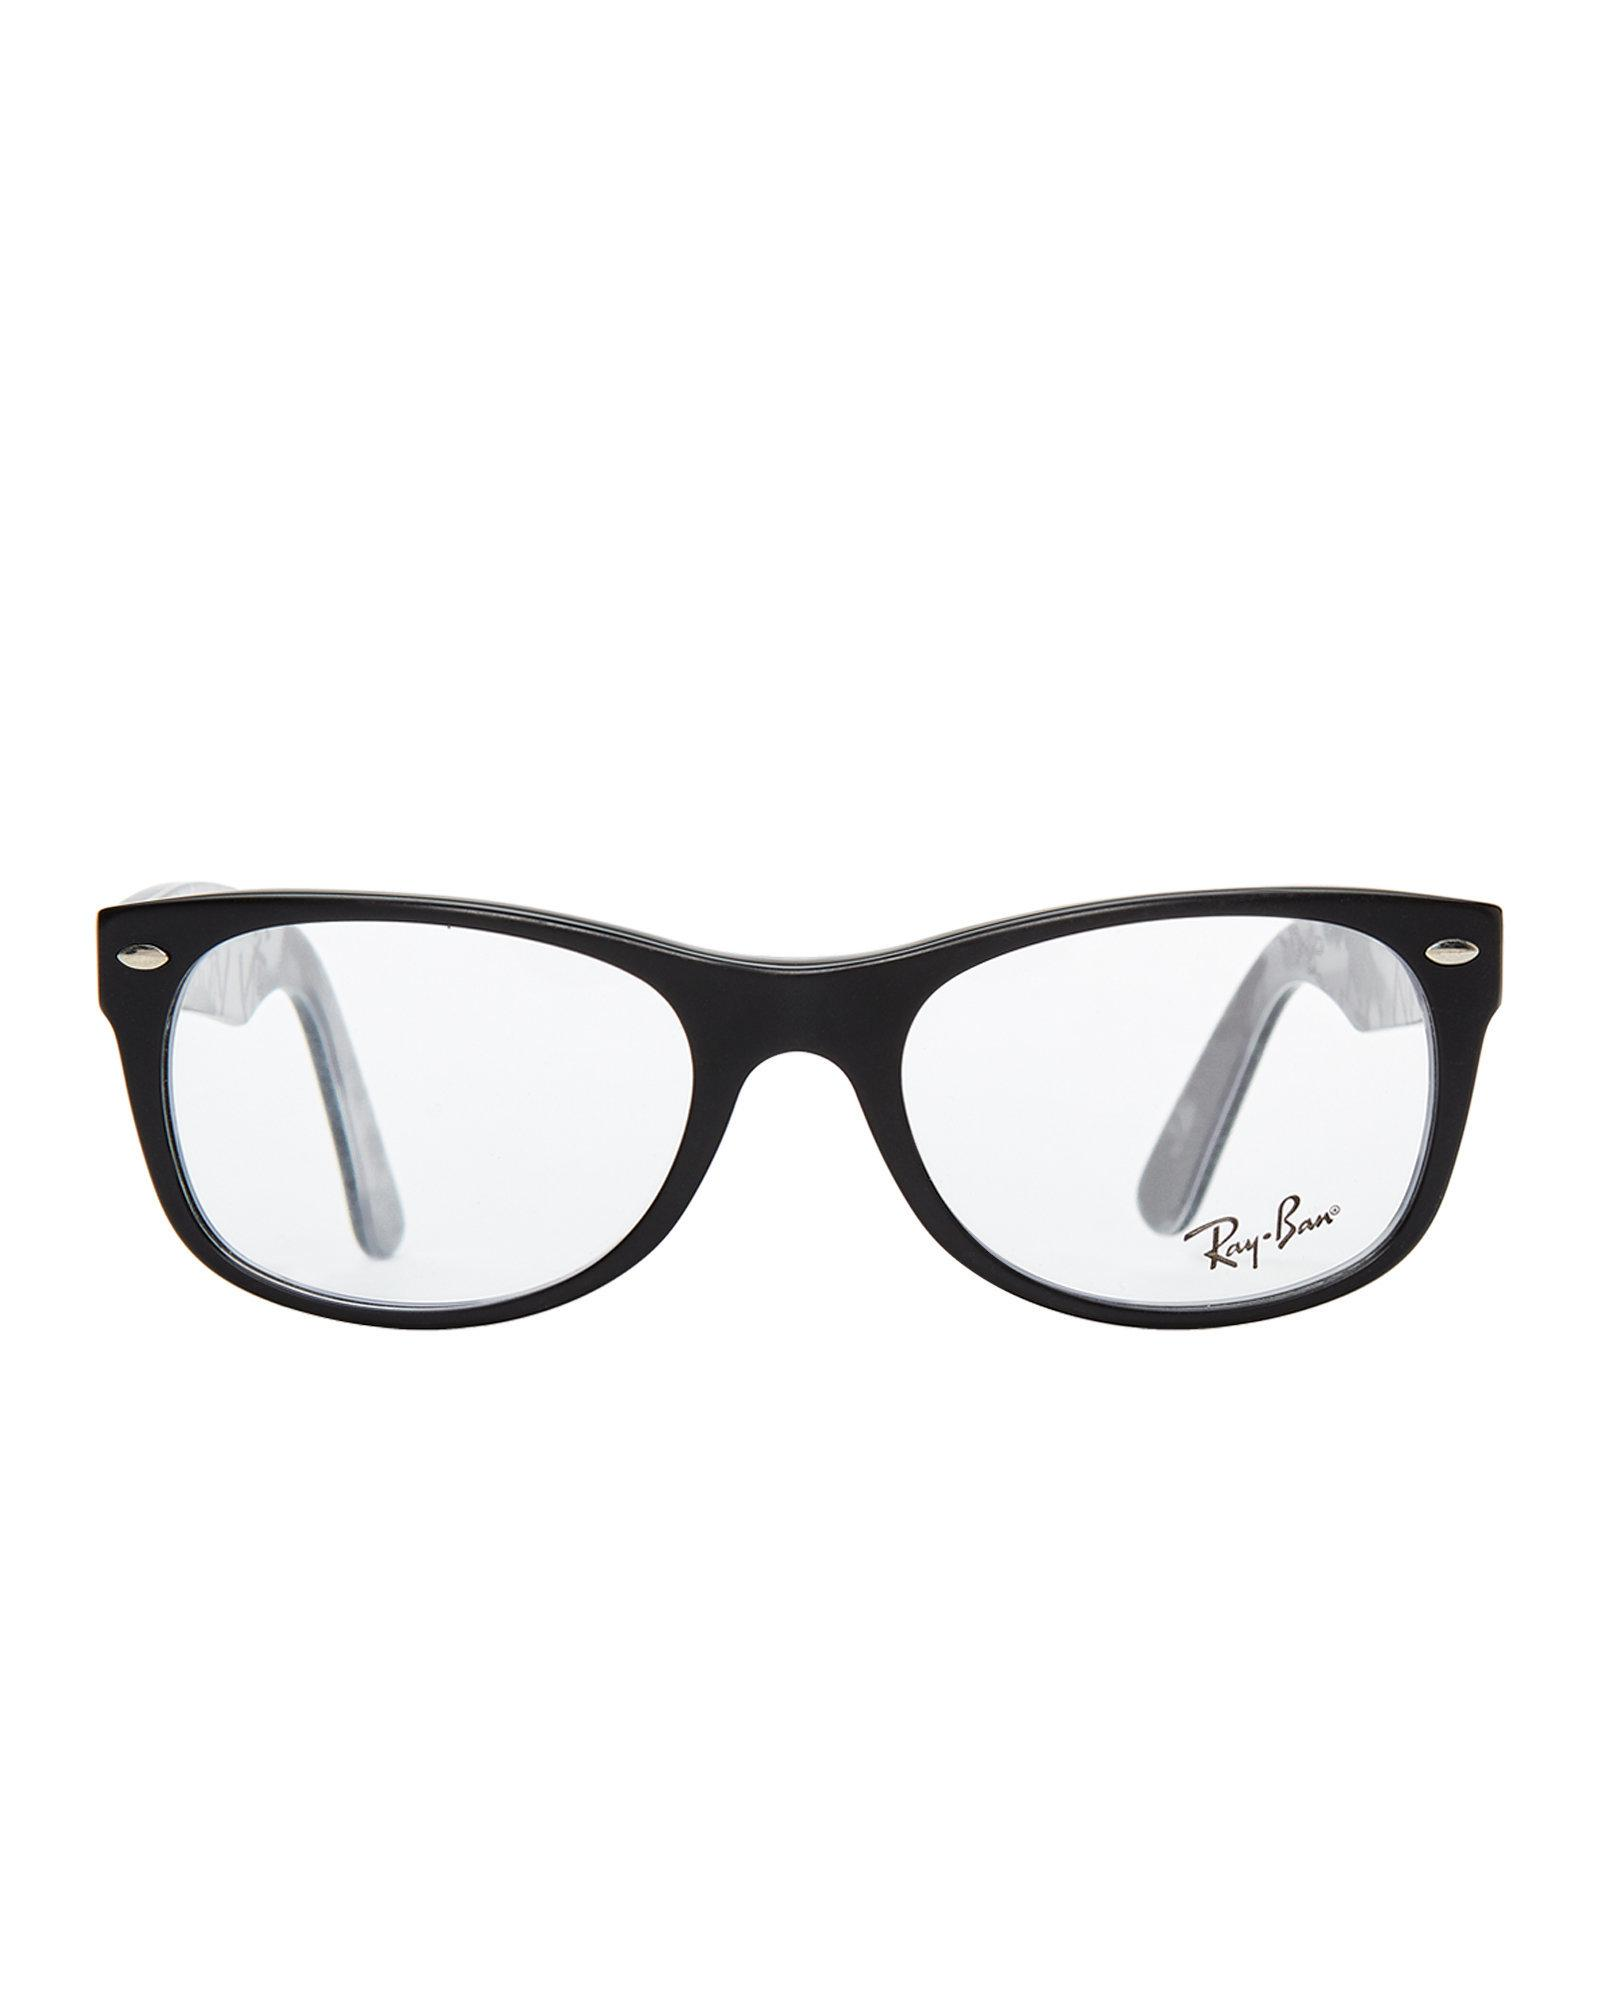 lyst ray ban rb5405 black oval optical frames in black Ray-Ban RB2132 52 gallery